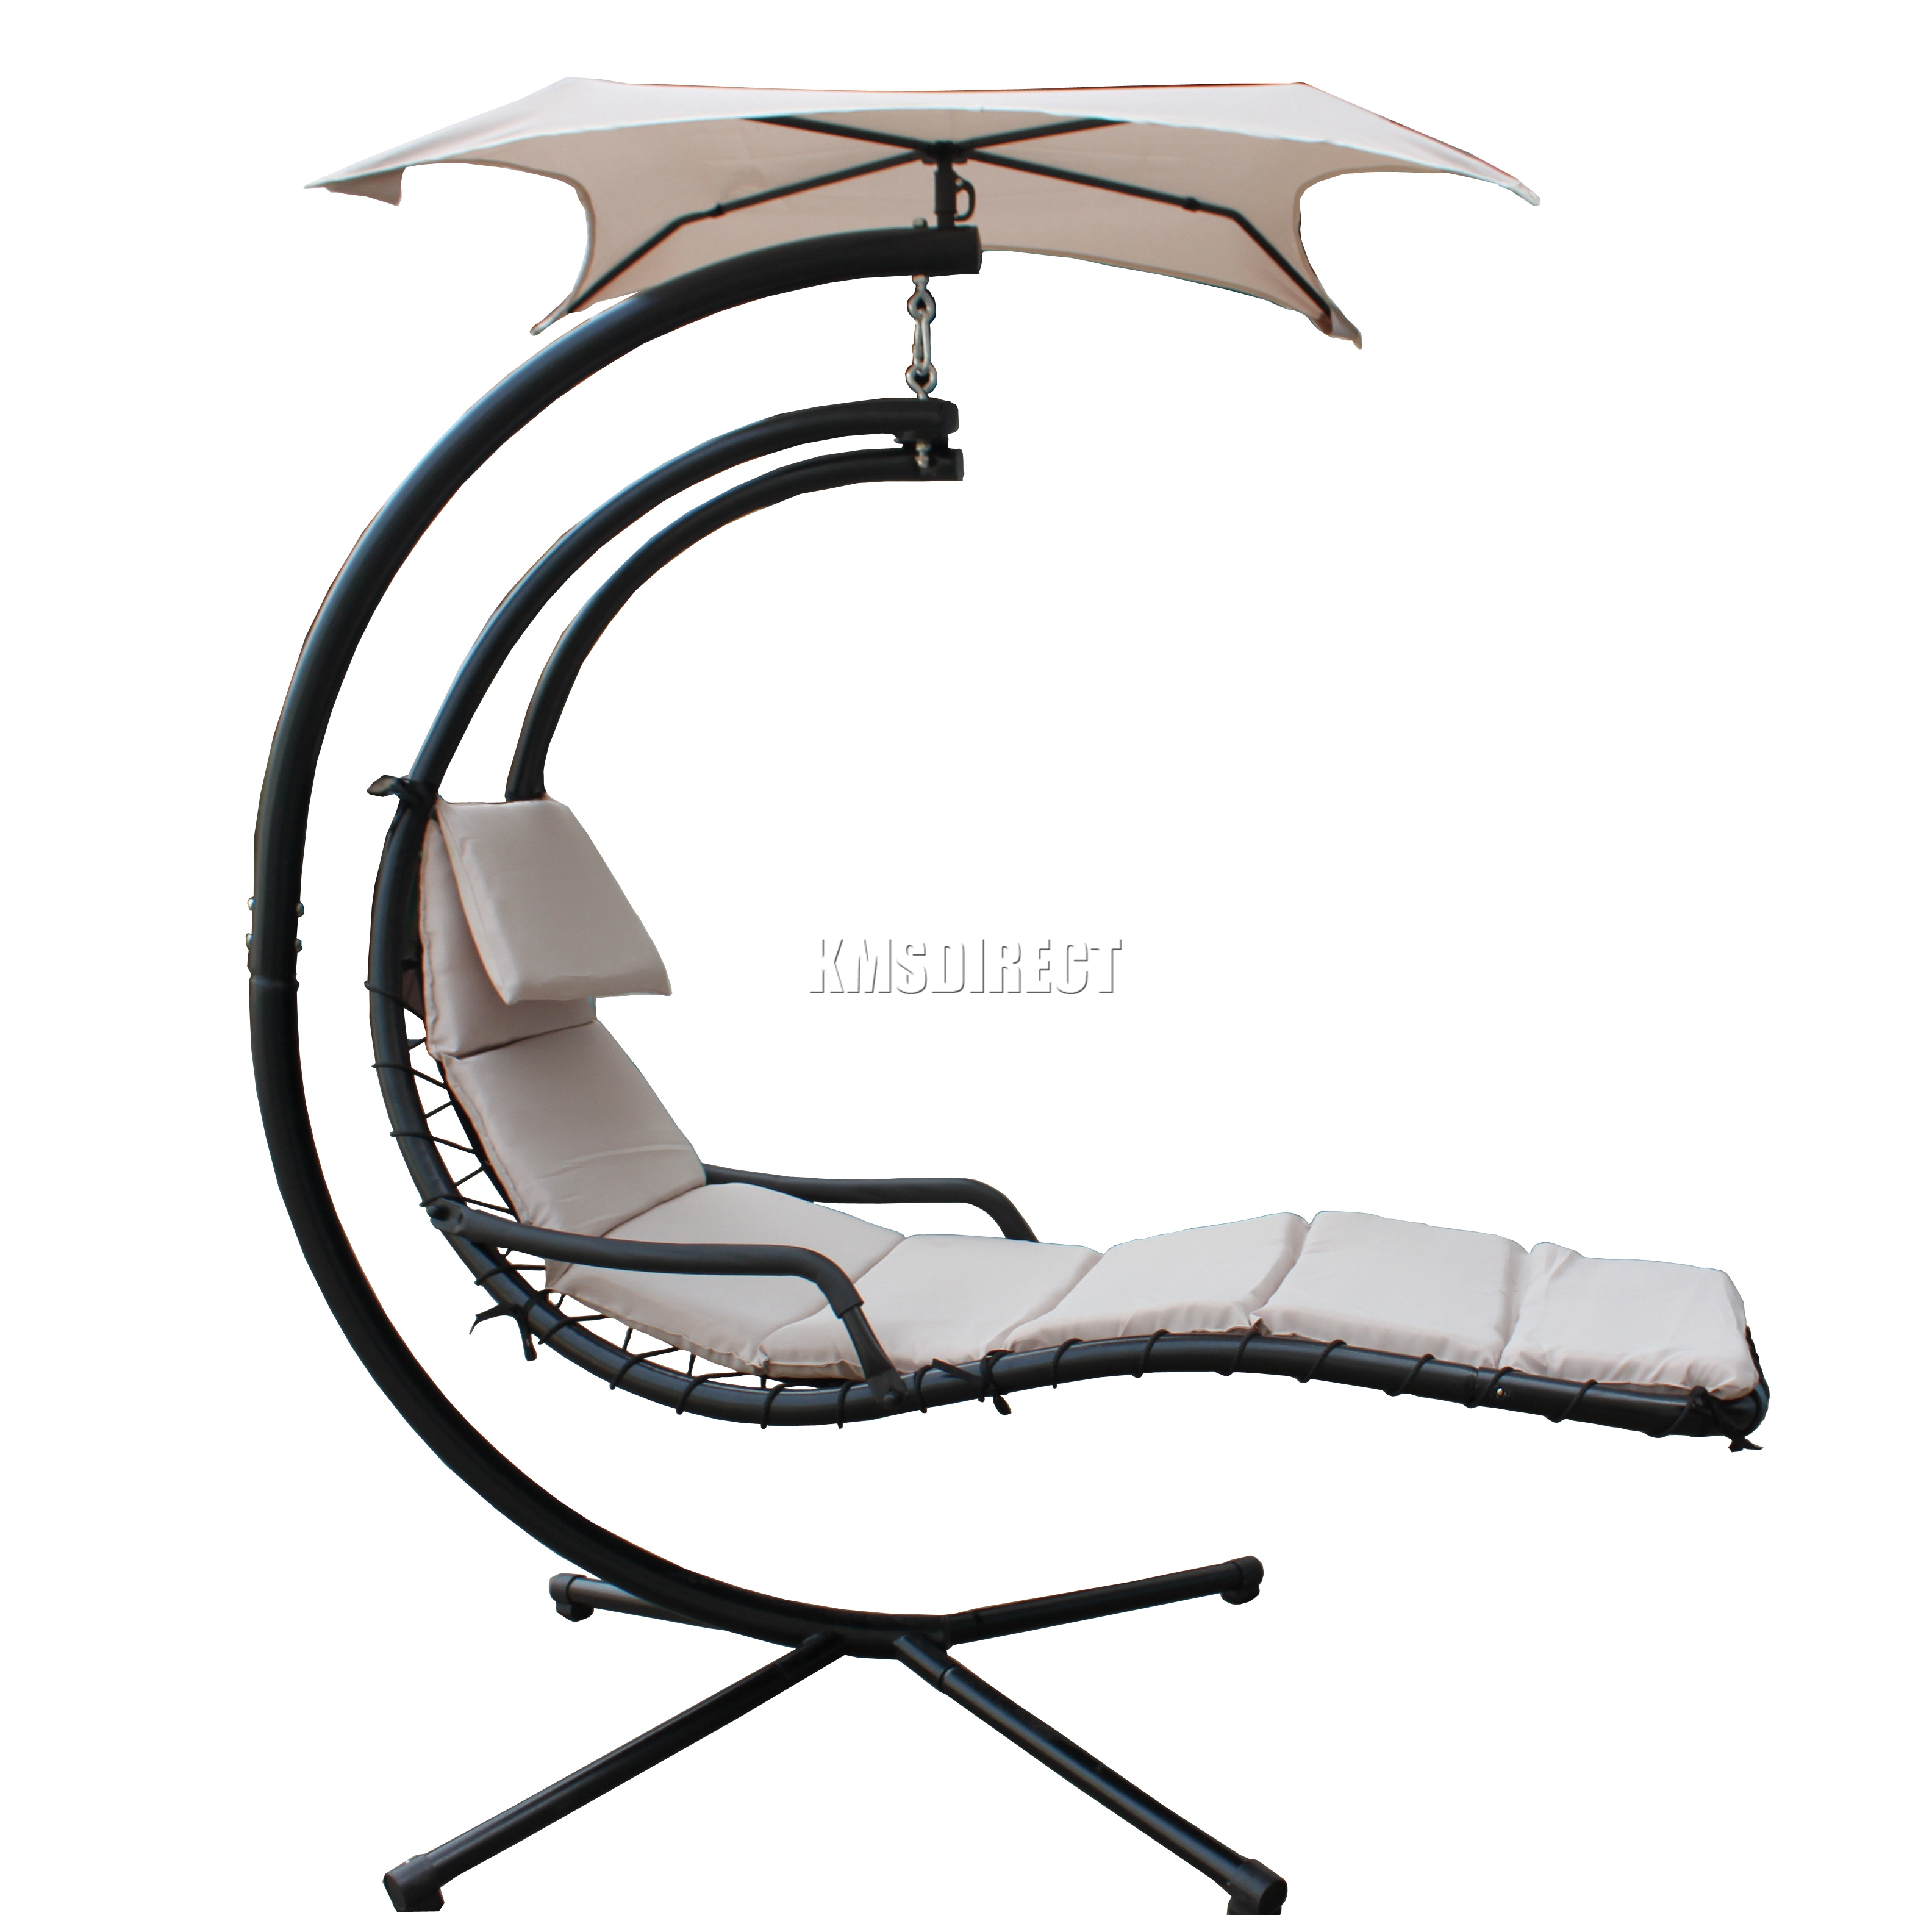 FoxHunter Garden Swing Hammock Helicopter Hanging Chair Seat